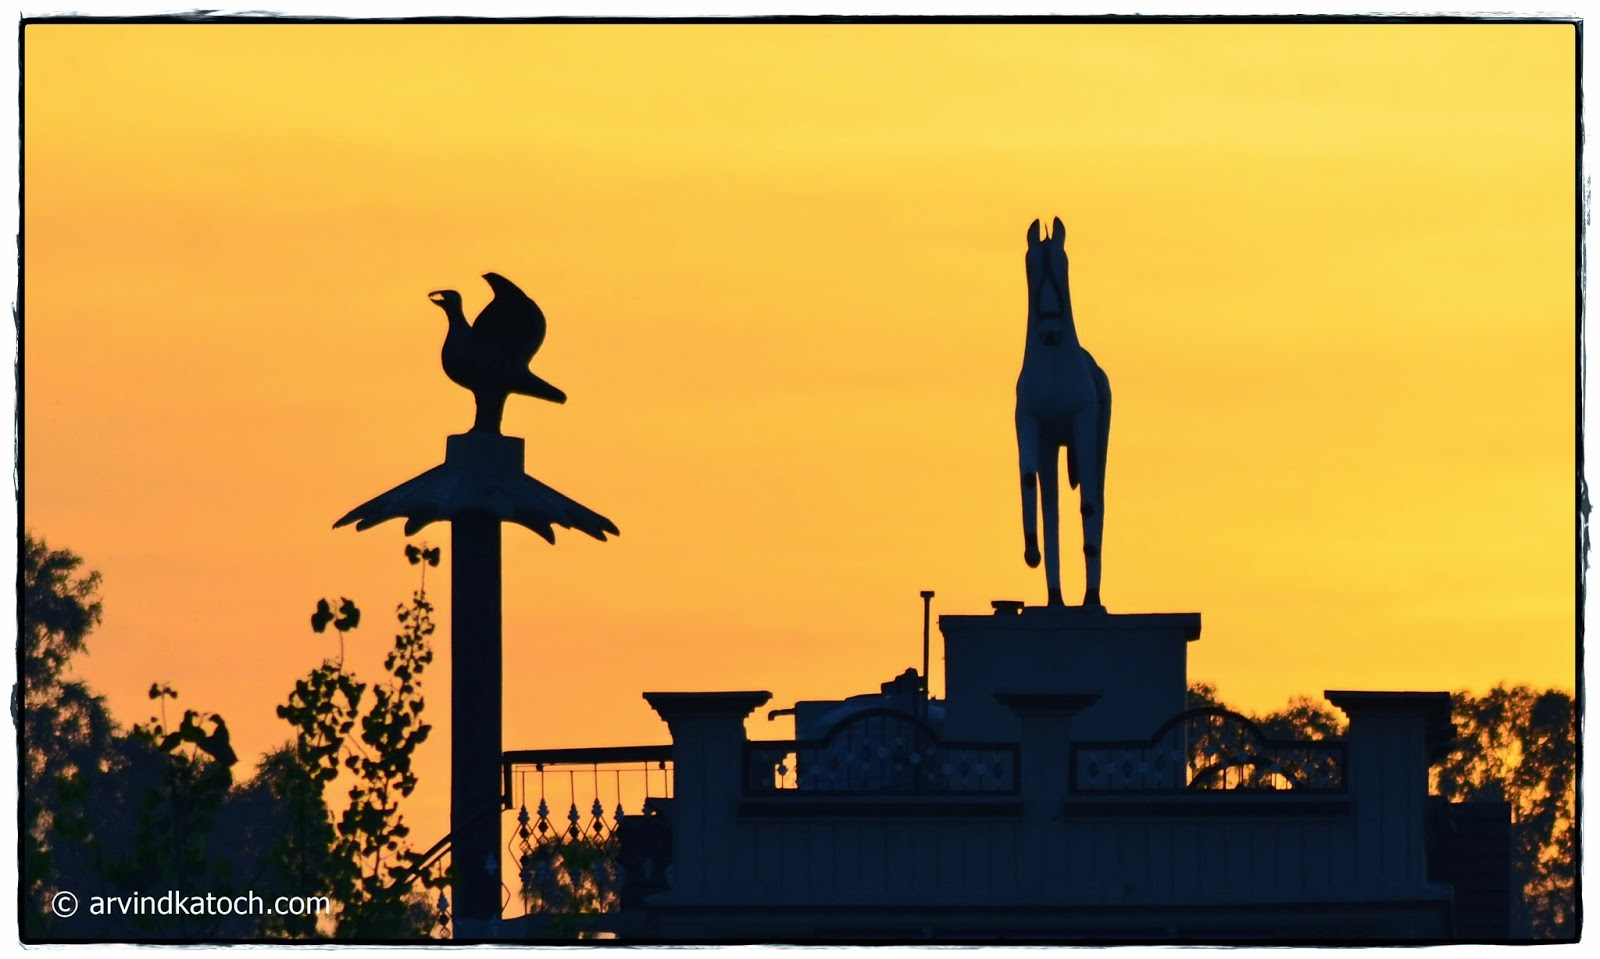 Statue, Eage, Horse, Home, Top, Punjab, Evening, Sunlight